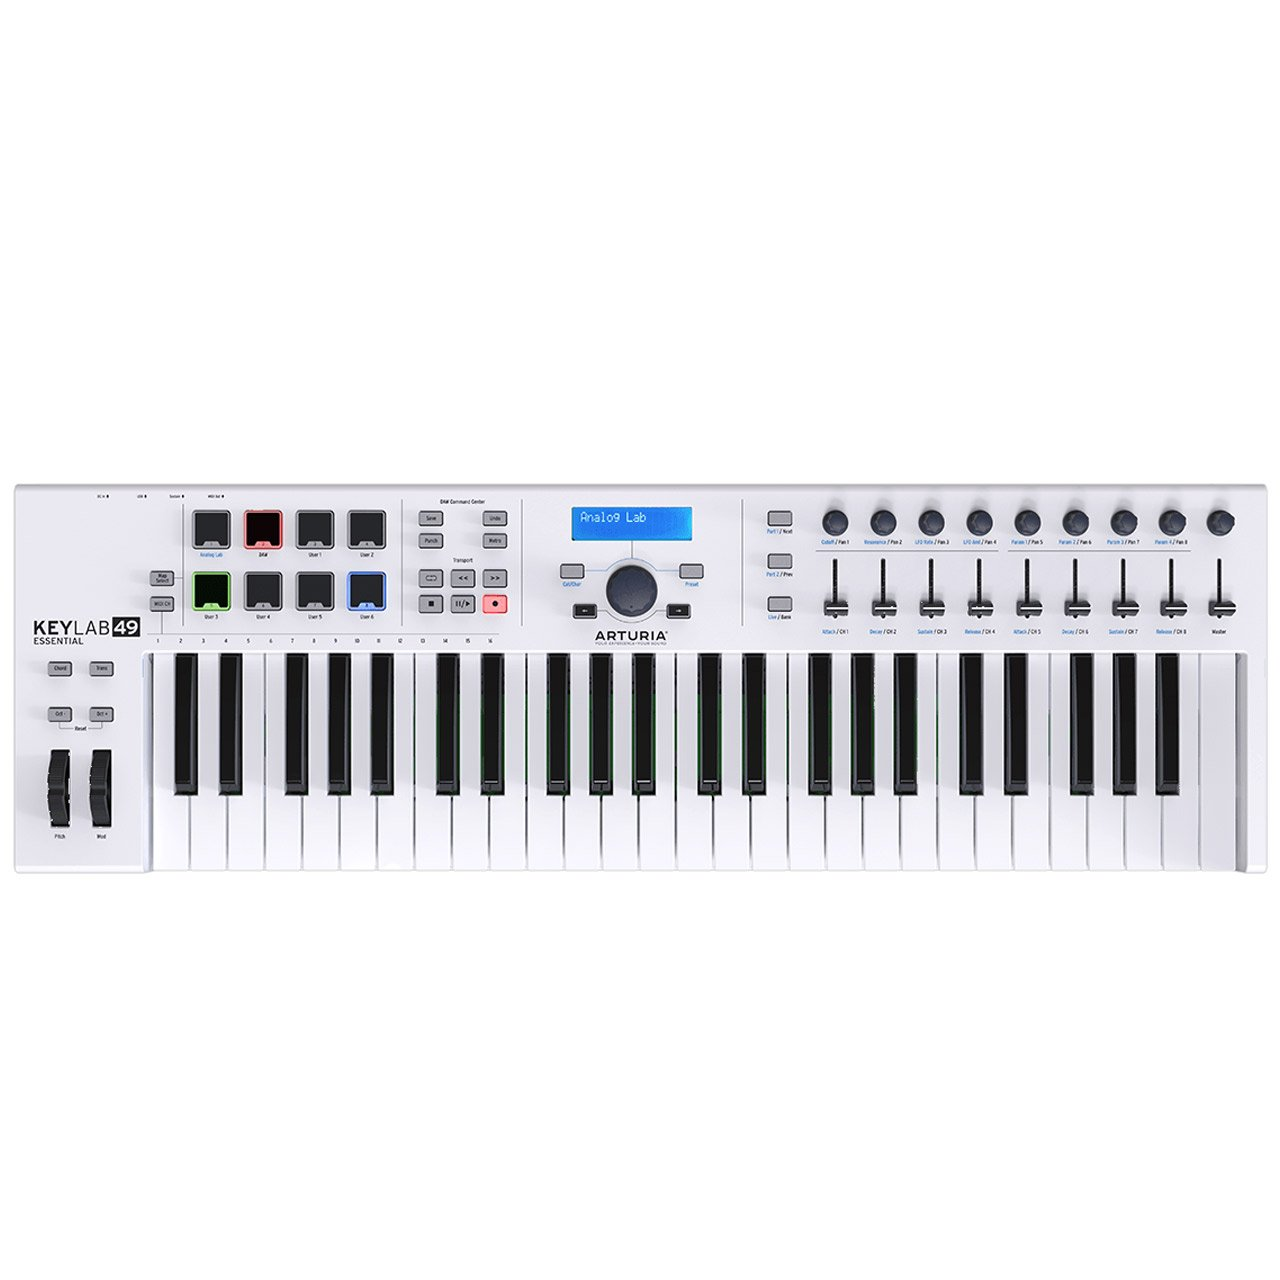 Controller Keyboards - Arturia KeyLab Essential 49 Semi-Weighted USB MIDI Controller Keyboard